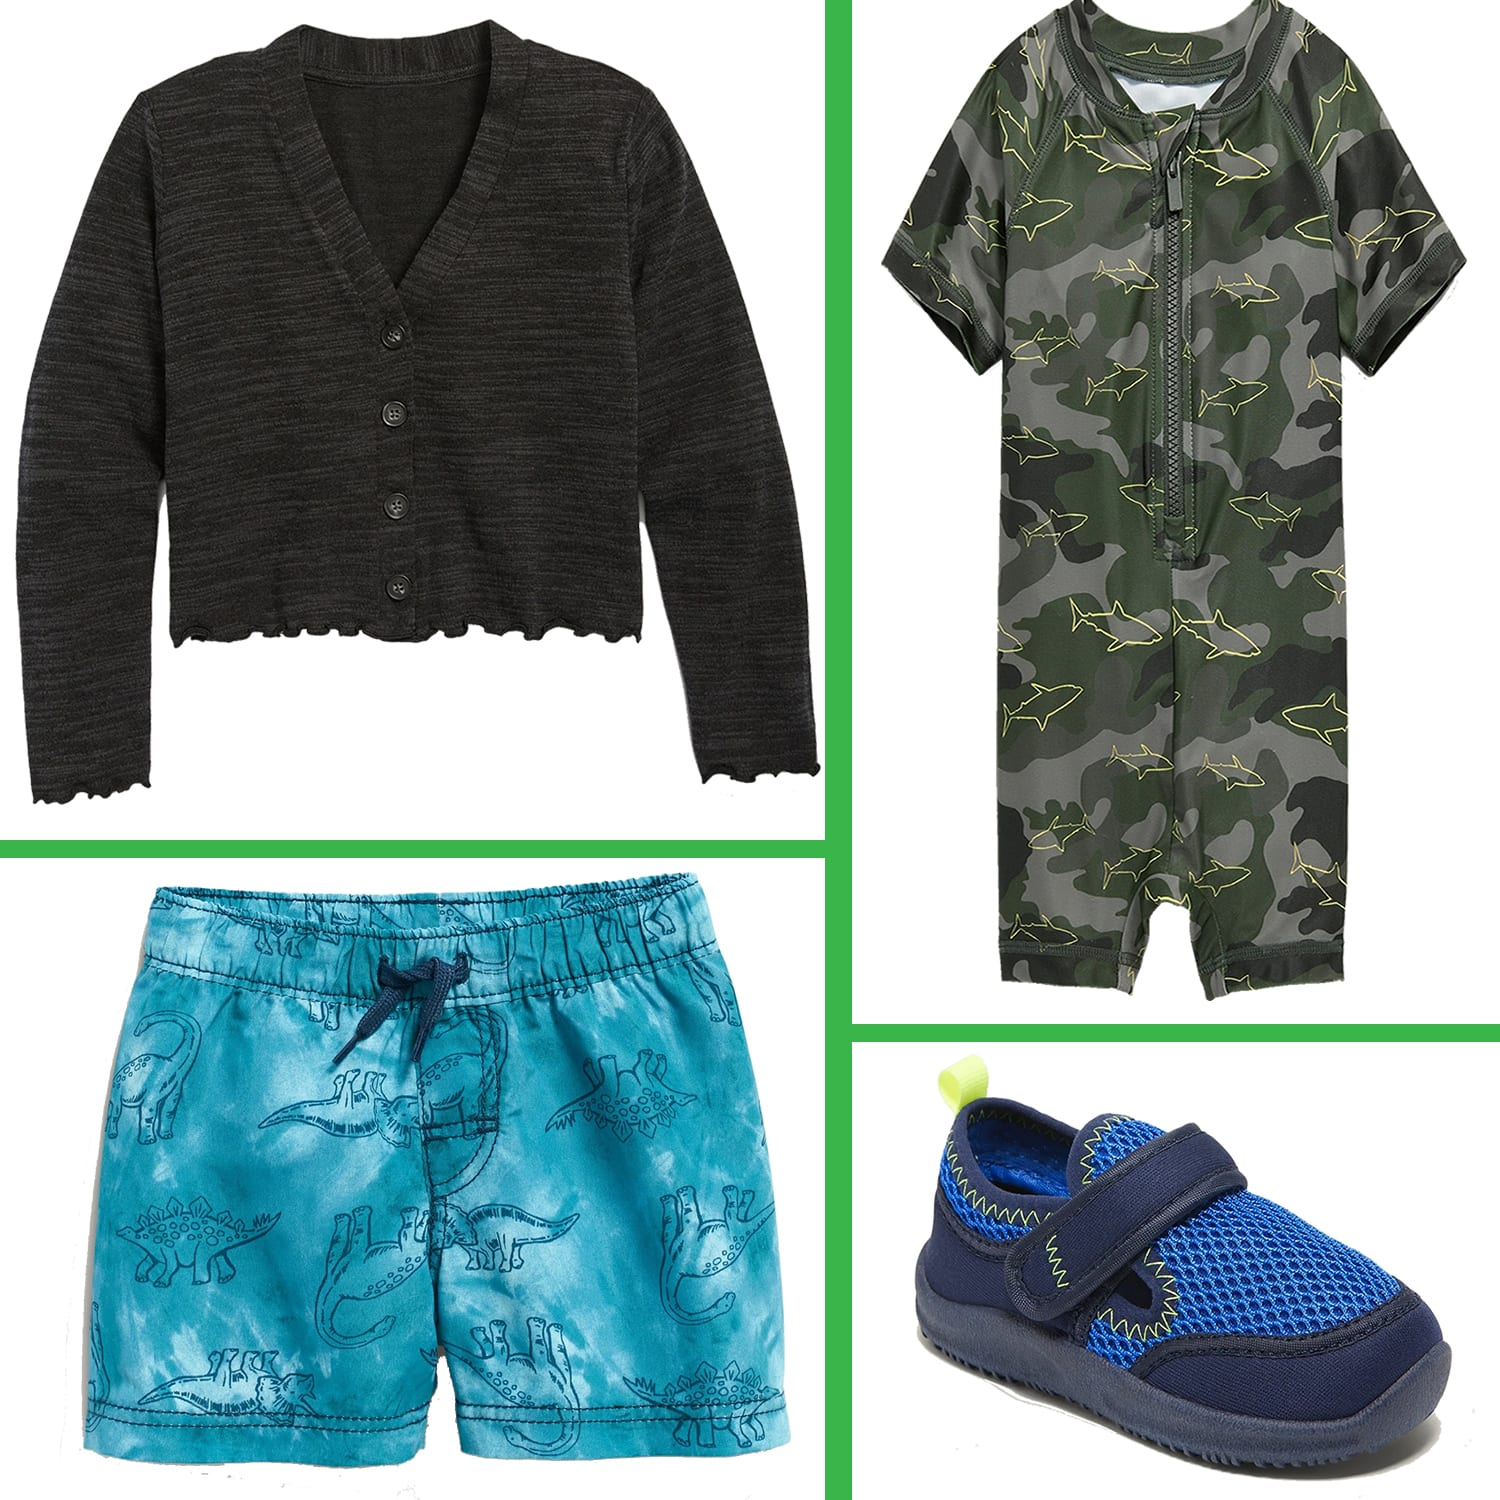 Old Navy Girls' Button-Front Cardigan $6, Baby Swim from $3.75 |Toddler Mesh Water Shoes $5.75, Glitter-Jelly Flats $3.75, Toddler Girls Uniform Polo $3 & MORE + Store Pickup